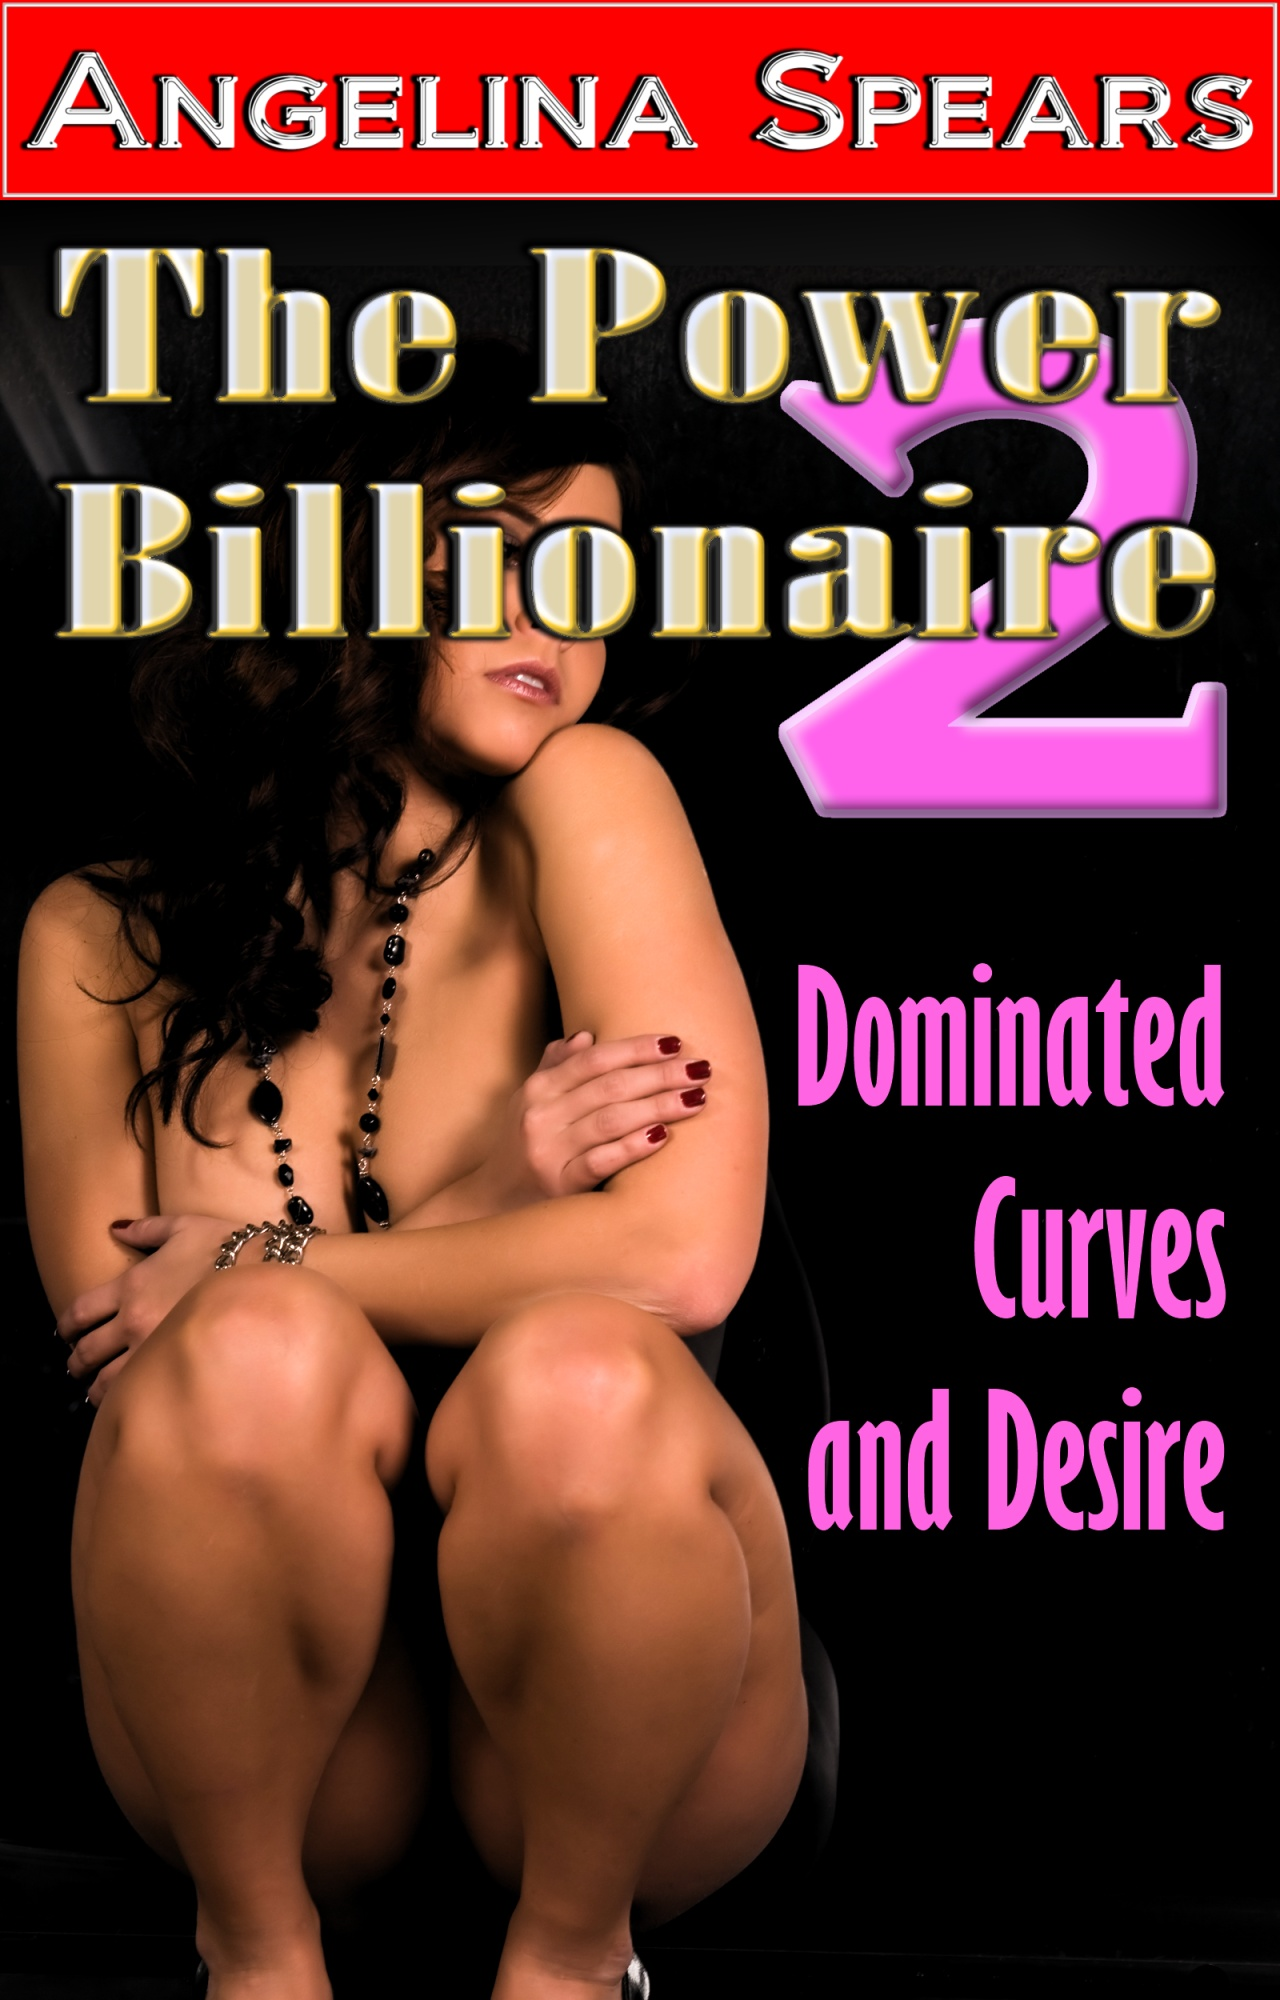 The Power Billionaire 2 - Dominated Curves and Desire